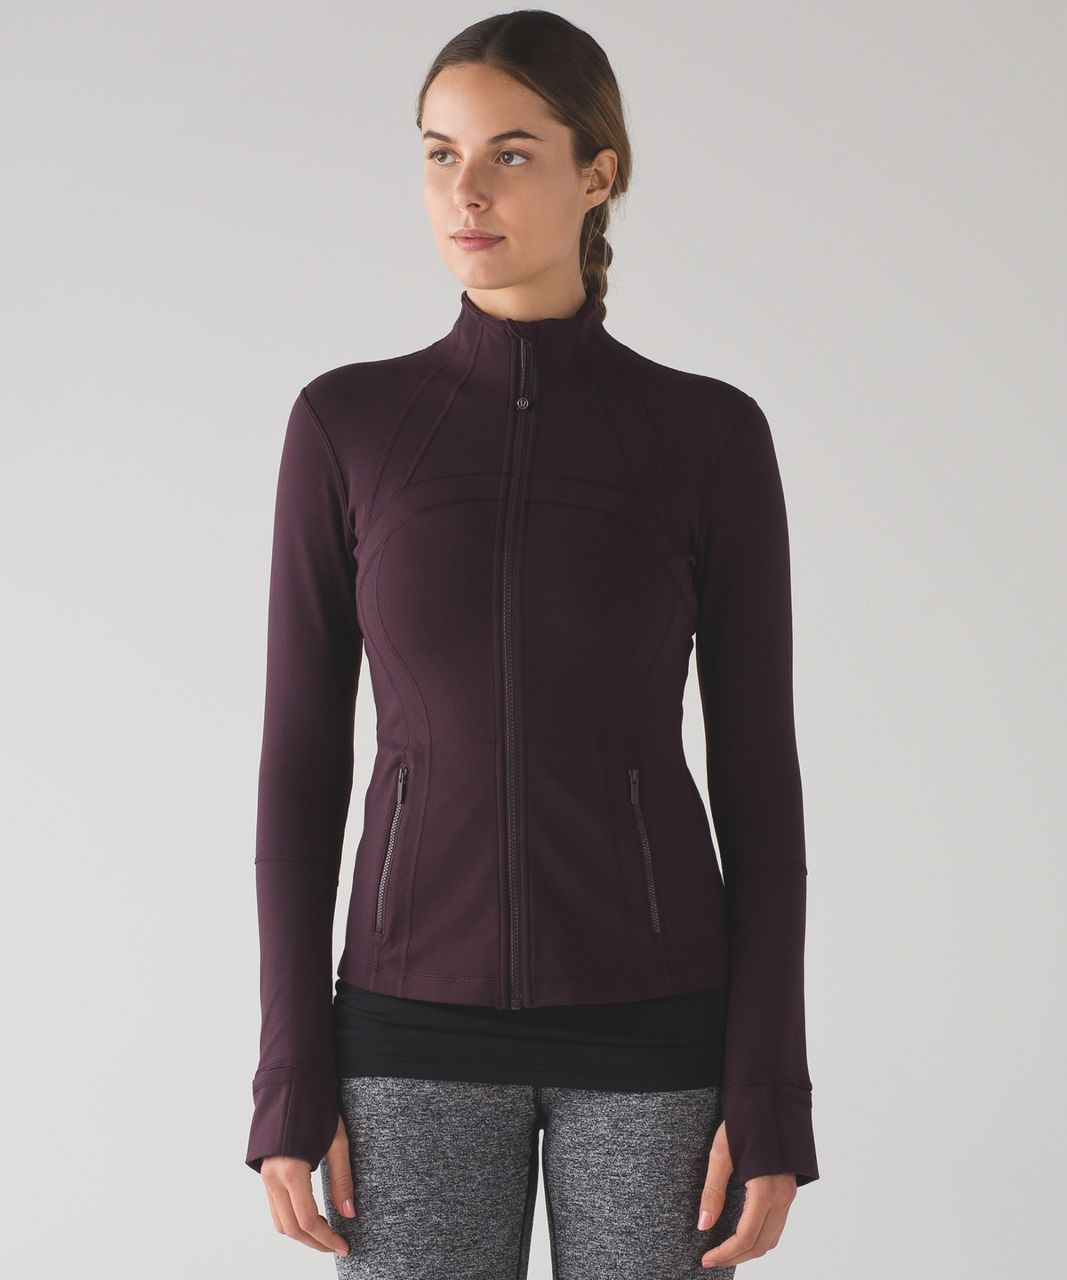 Lululemon Define Jacket - Black Cherry